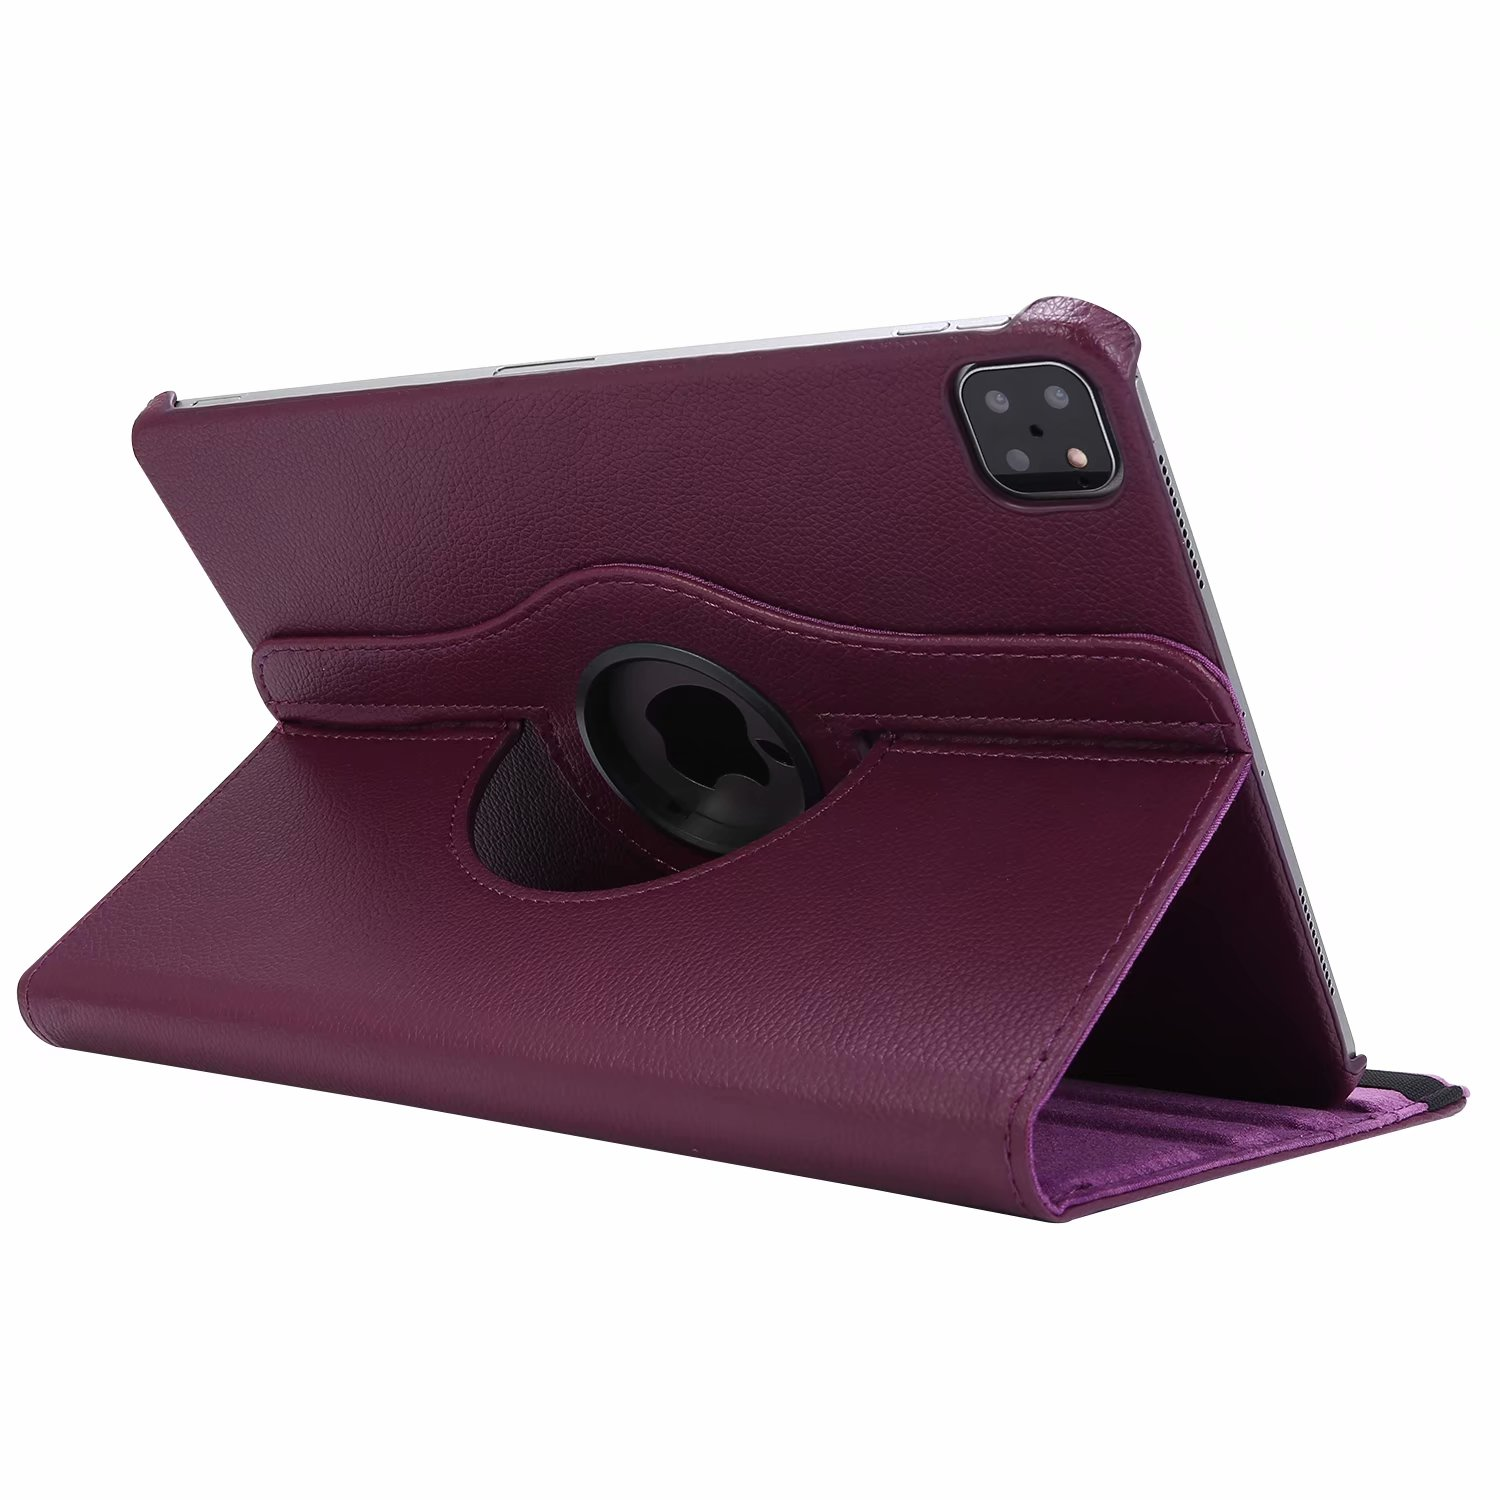 A2013 Degree iPad Pro 11 A2068 for 2021/2020/2018 Case A1980 A2230 A2228 A1934 360 Cover